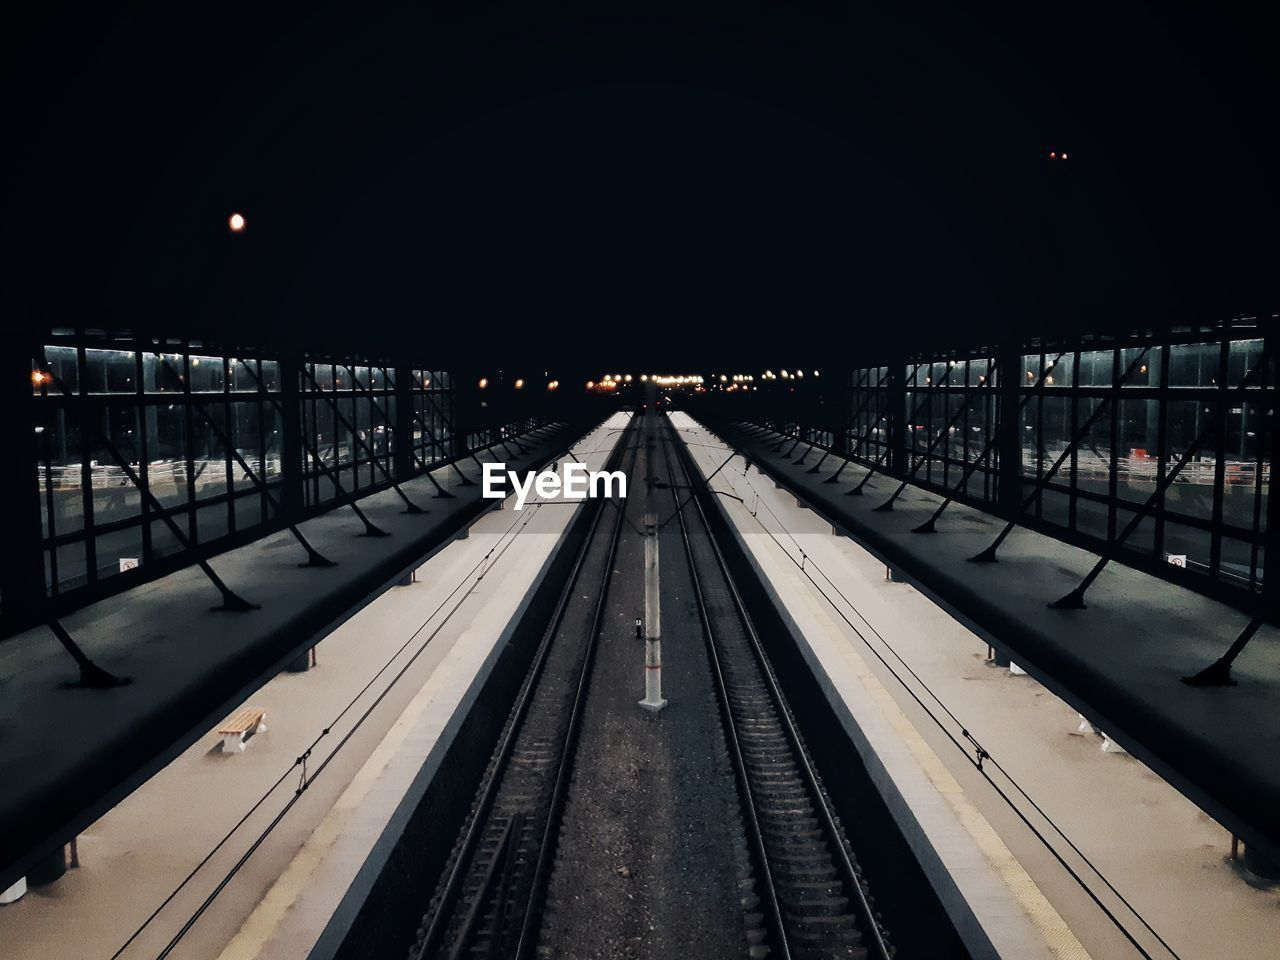 transportation, railroad track, rail transportation, track, architecture, the way forward, illuminated, direction, night, sky, built structure, diminishing perspective, nature, no people, connection, railing, outdoors, empty, railroad station, mode of transportation, platform, long